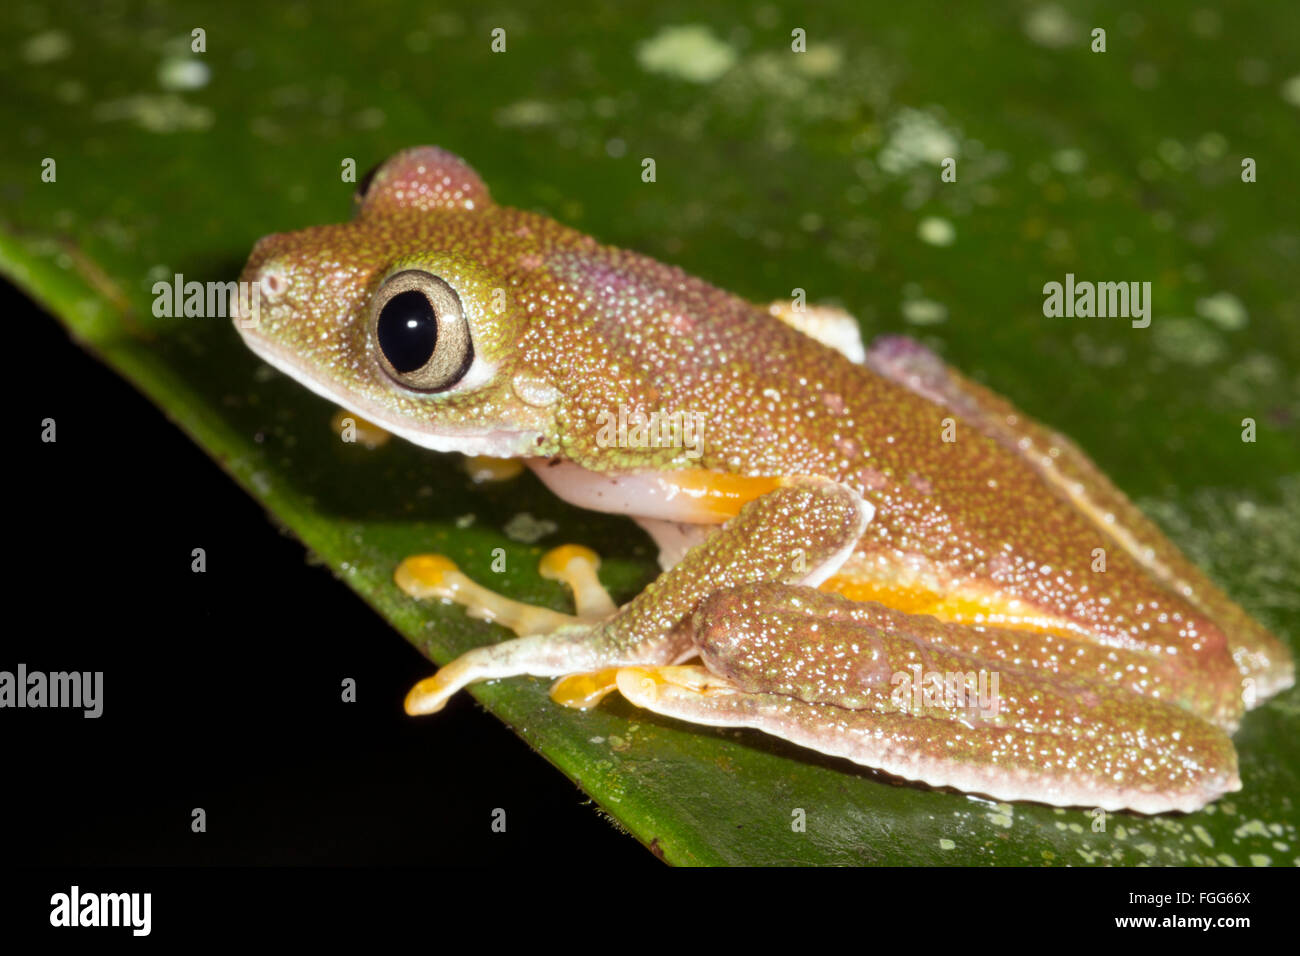 Amazon Leaf Frog (Agalychnis hulli) on a leaf in the rainforest, Pastaza province, Ecuador - Stock Image